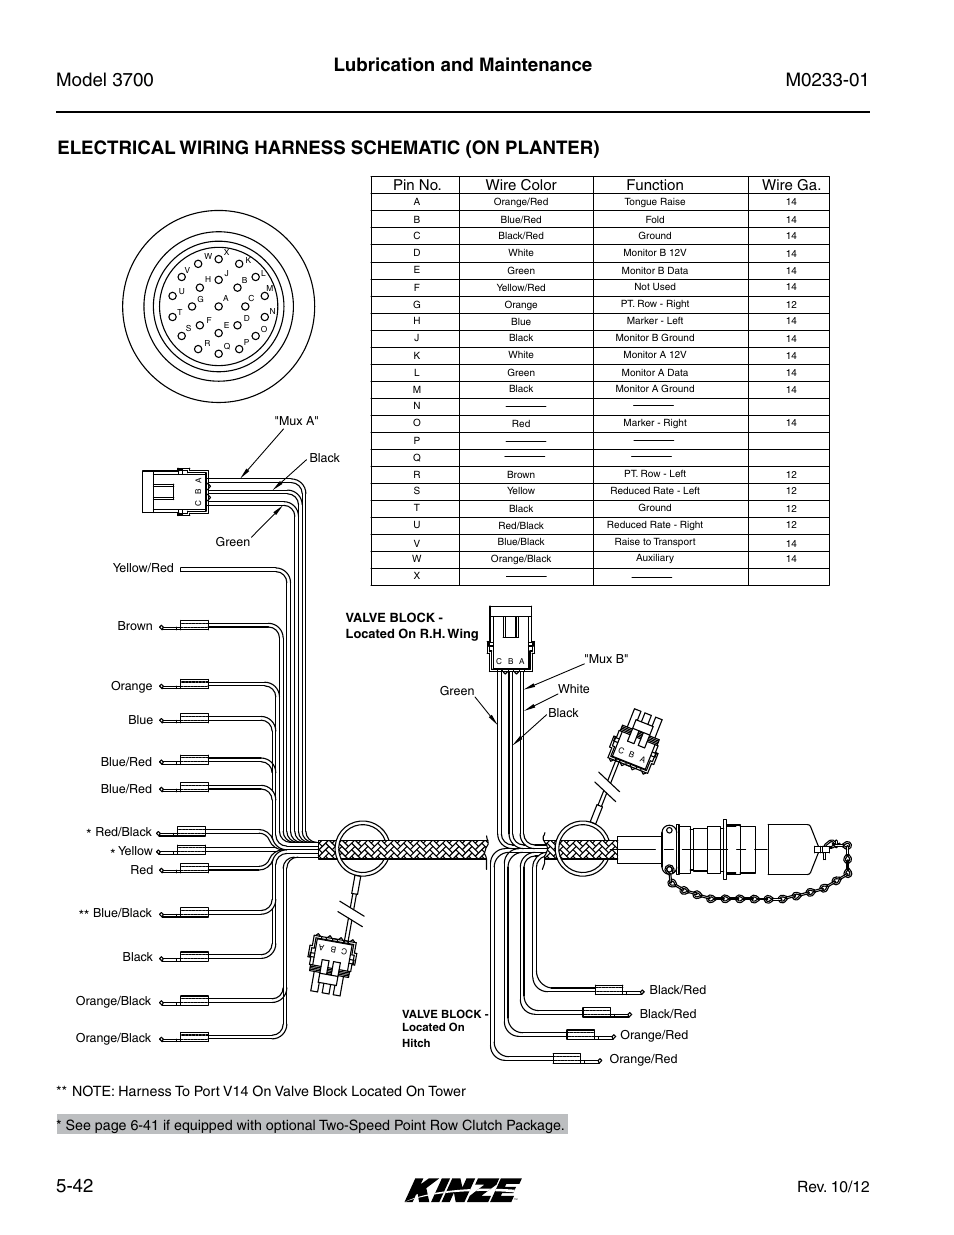 101 Wire Harness Diagram Electrical Wiring Harness Schematic On Planter Rev 10